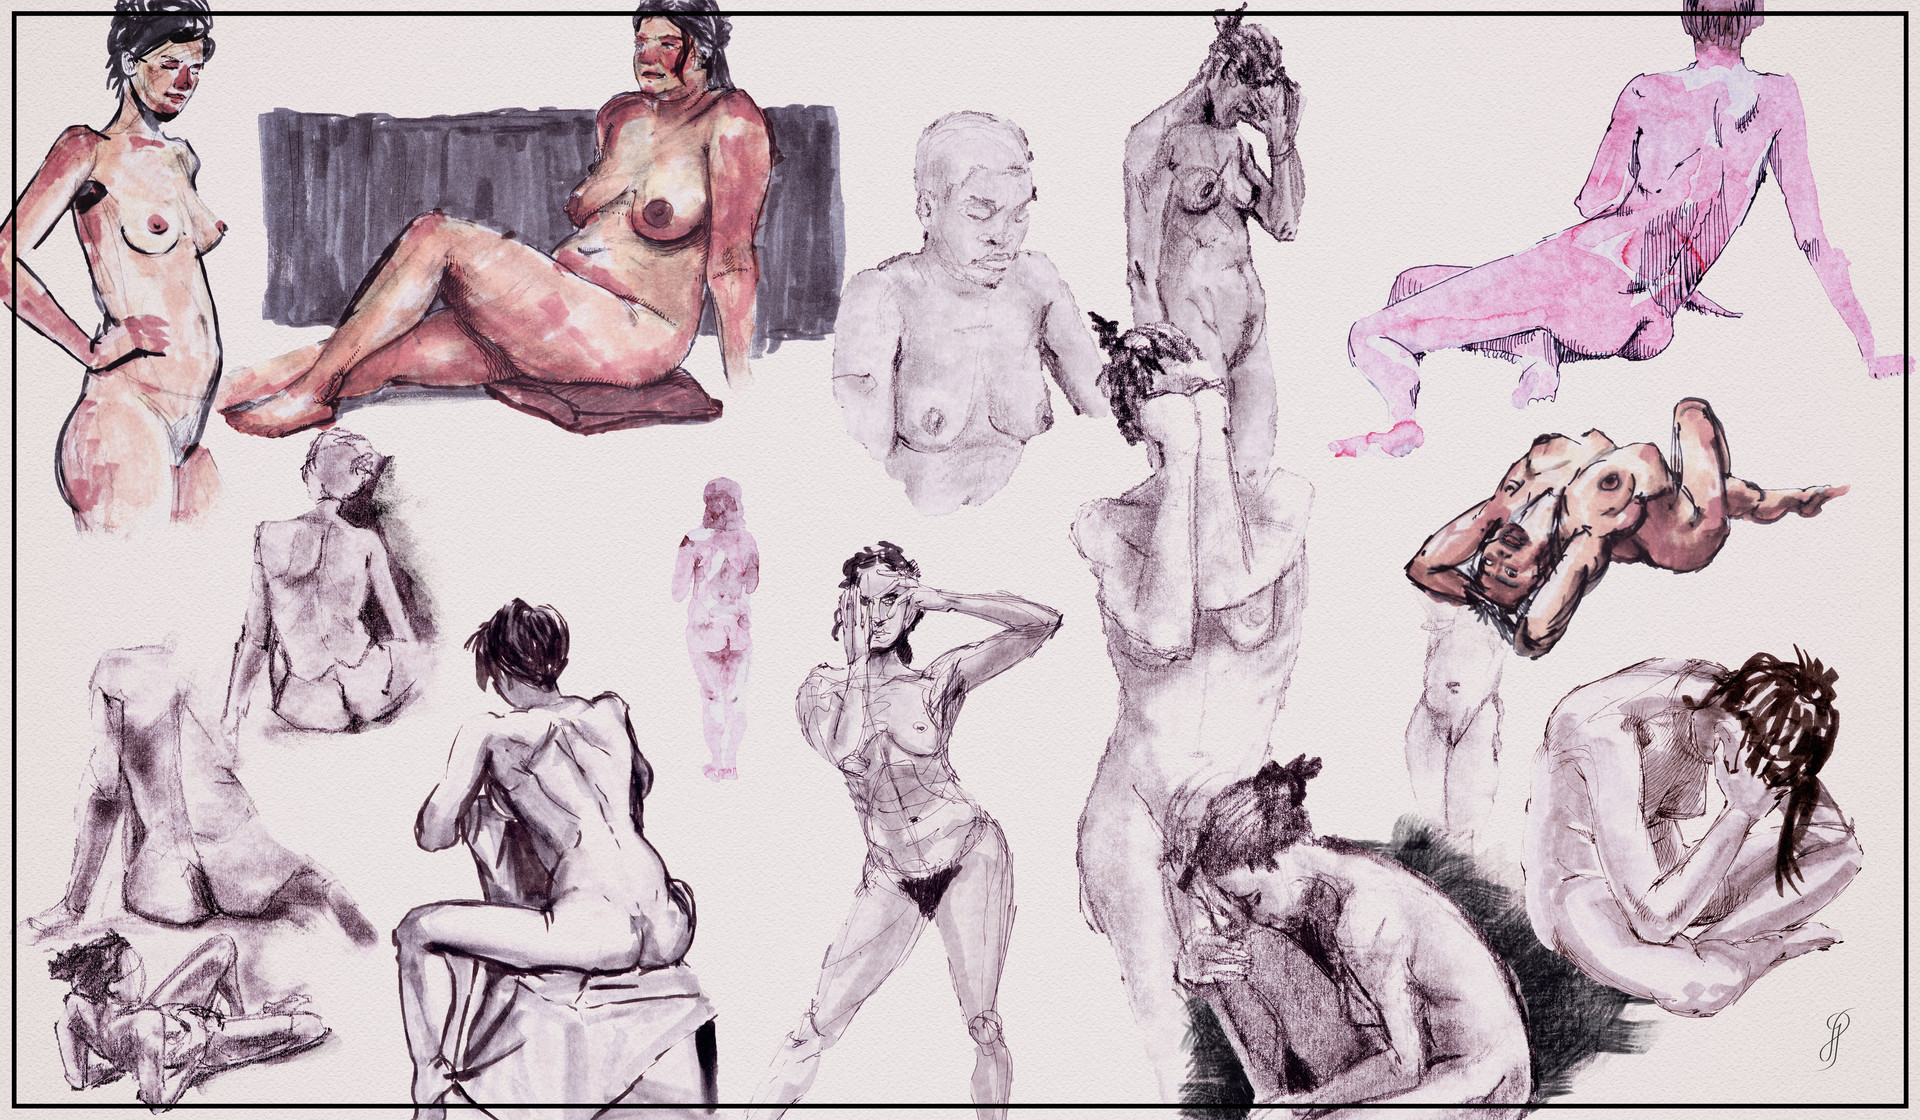 Giuseppe lucido lifedrawing montage